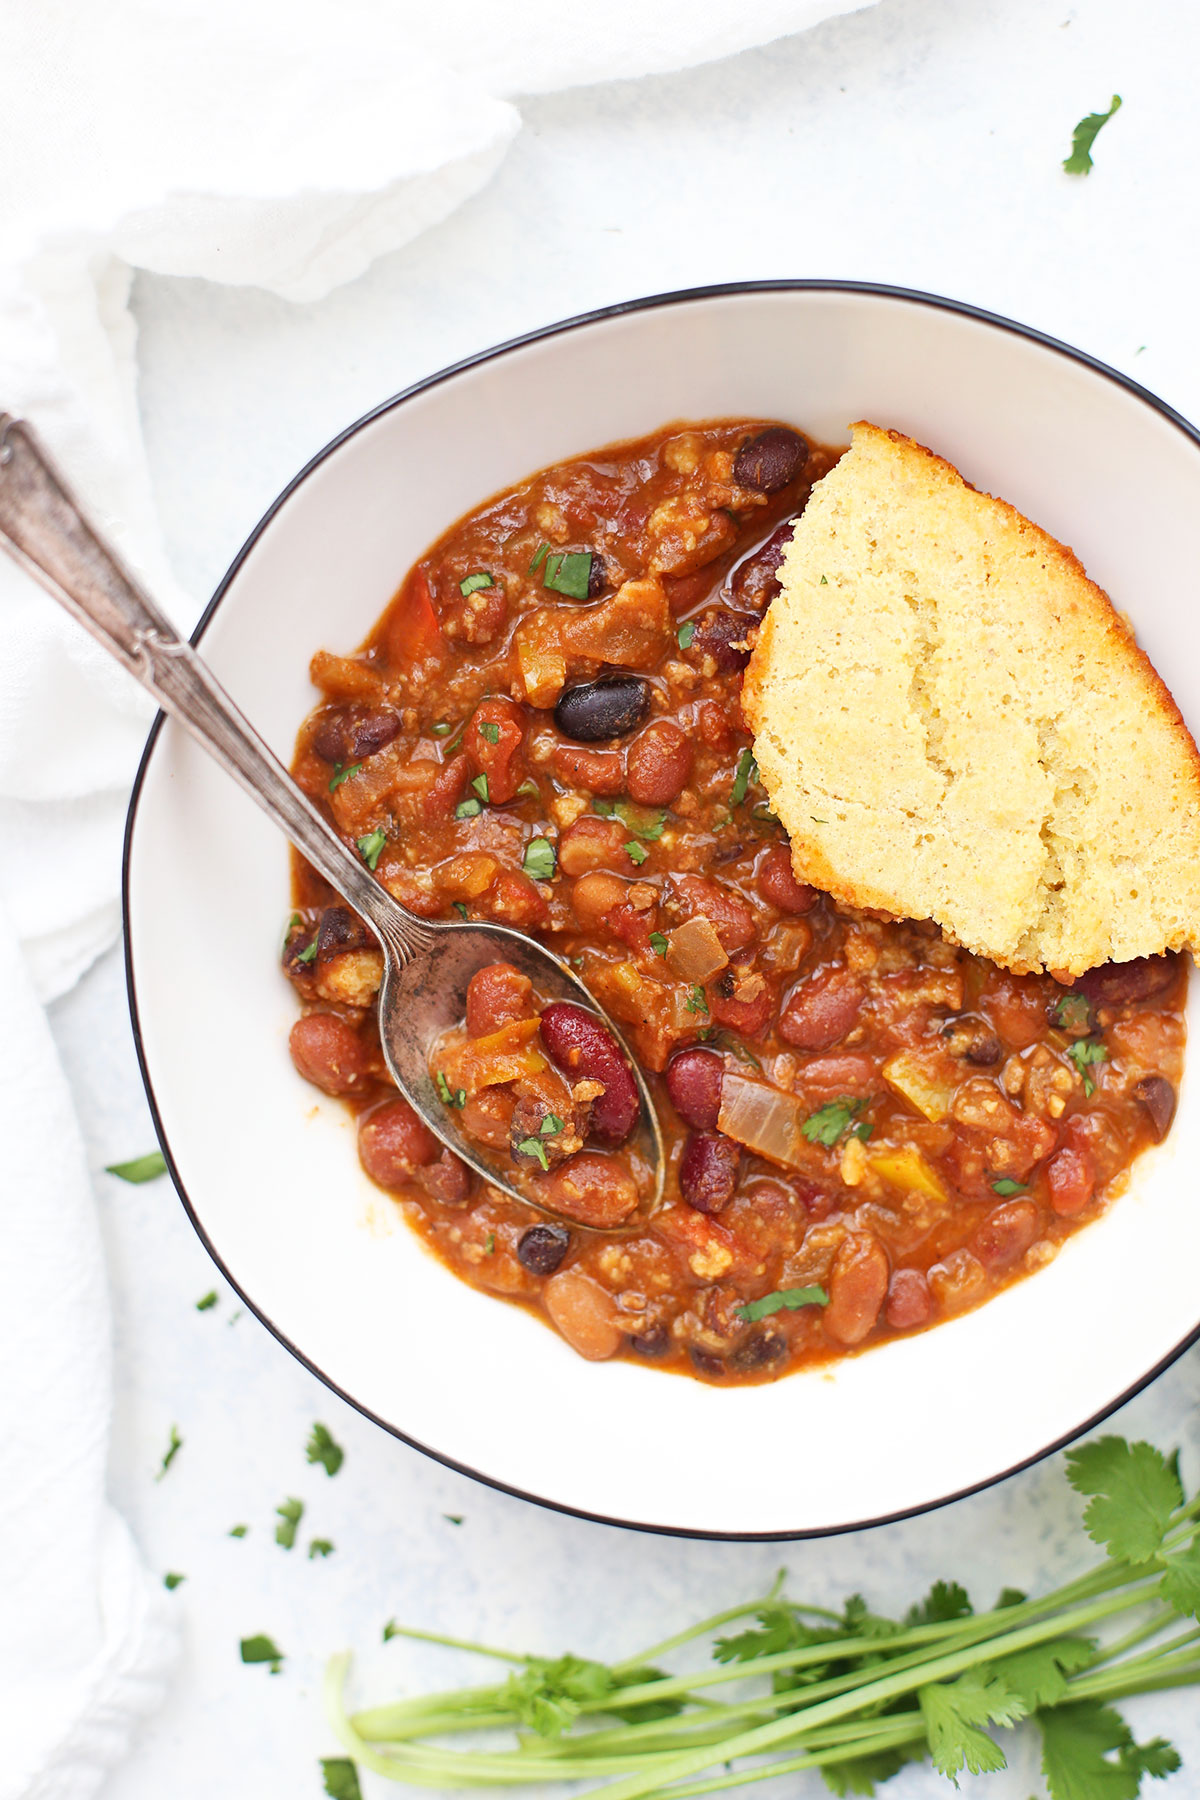 Close up view of chili and cornbread in a bowl with spoon inside